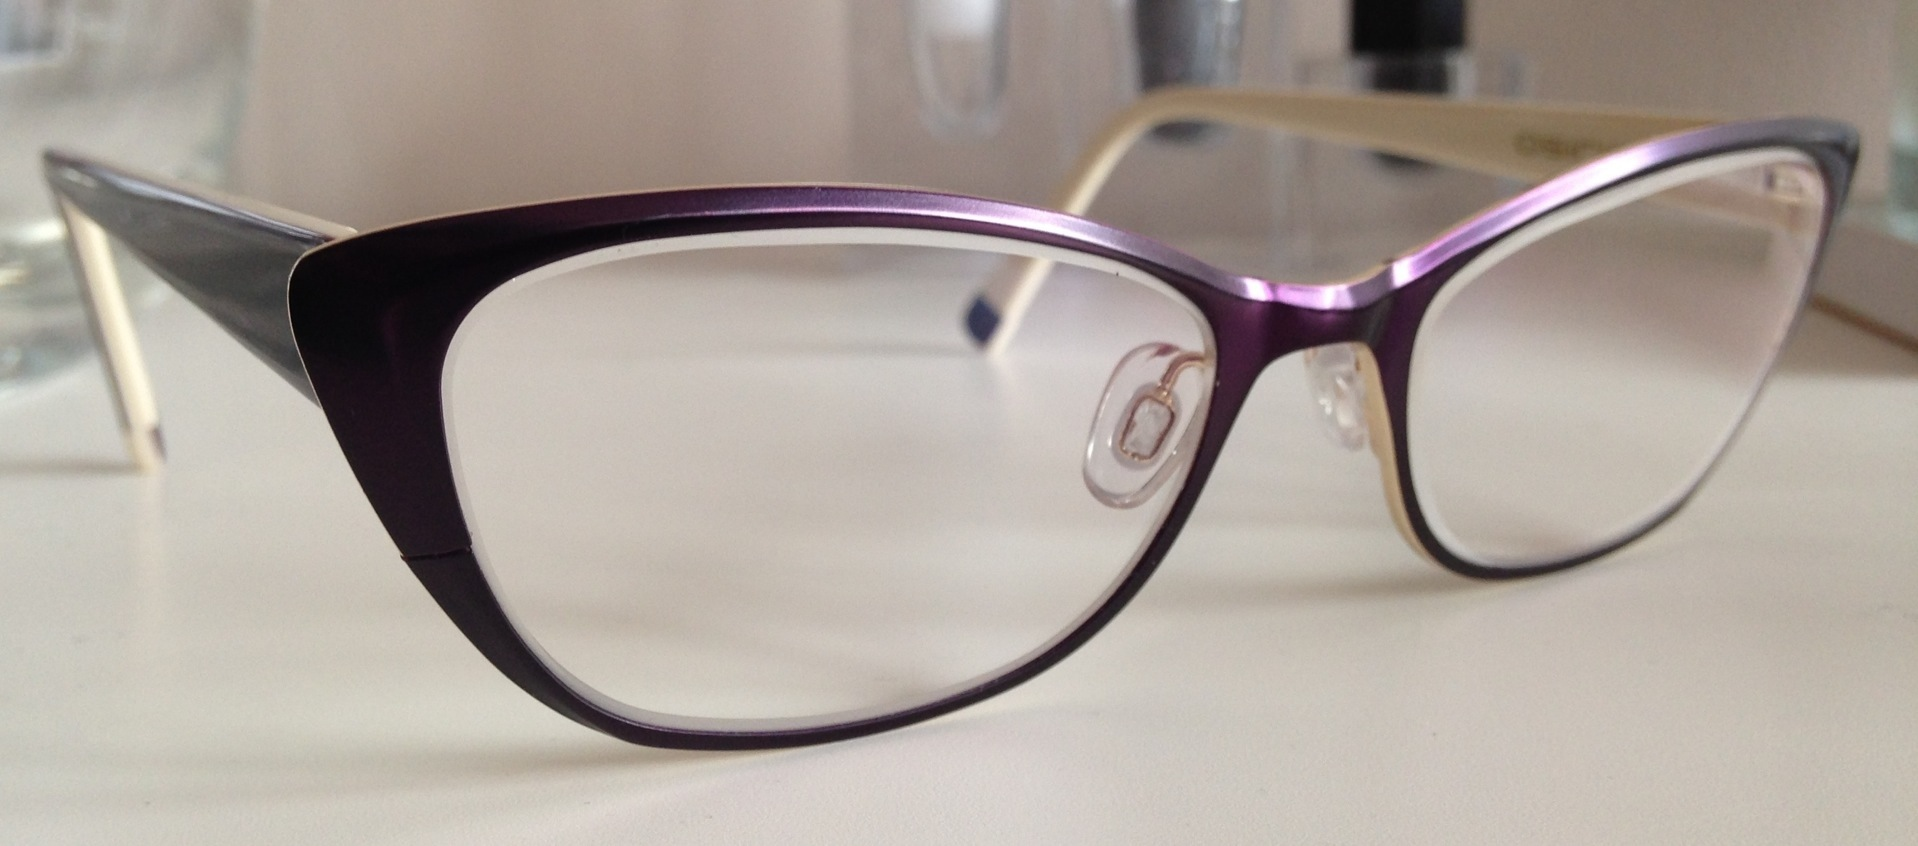 Black Frame Glasses Specsavers : Product review: Osiris glasses from Specsavers So Many ...